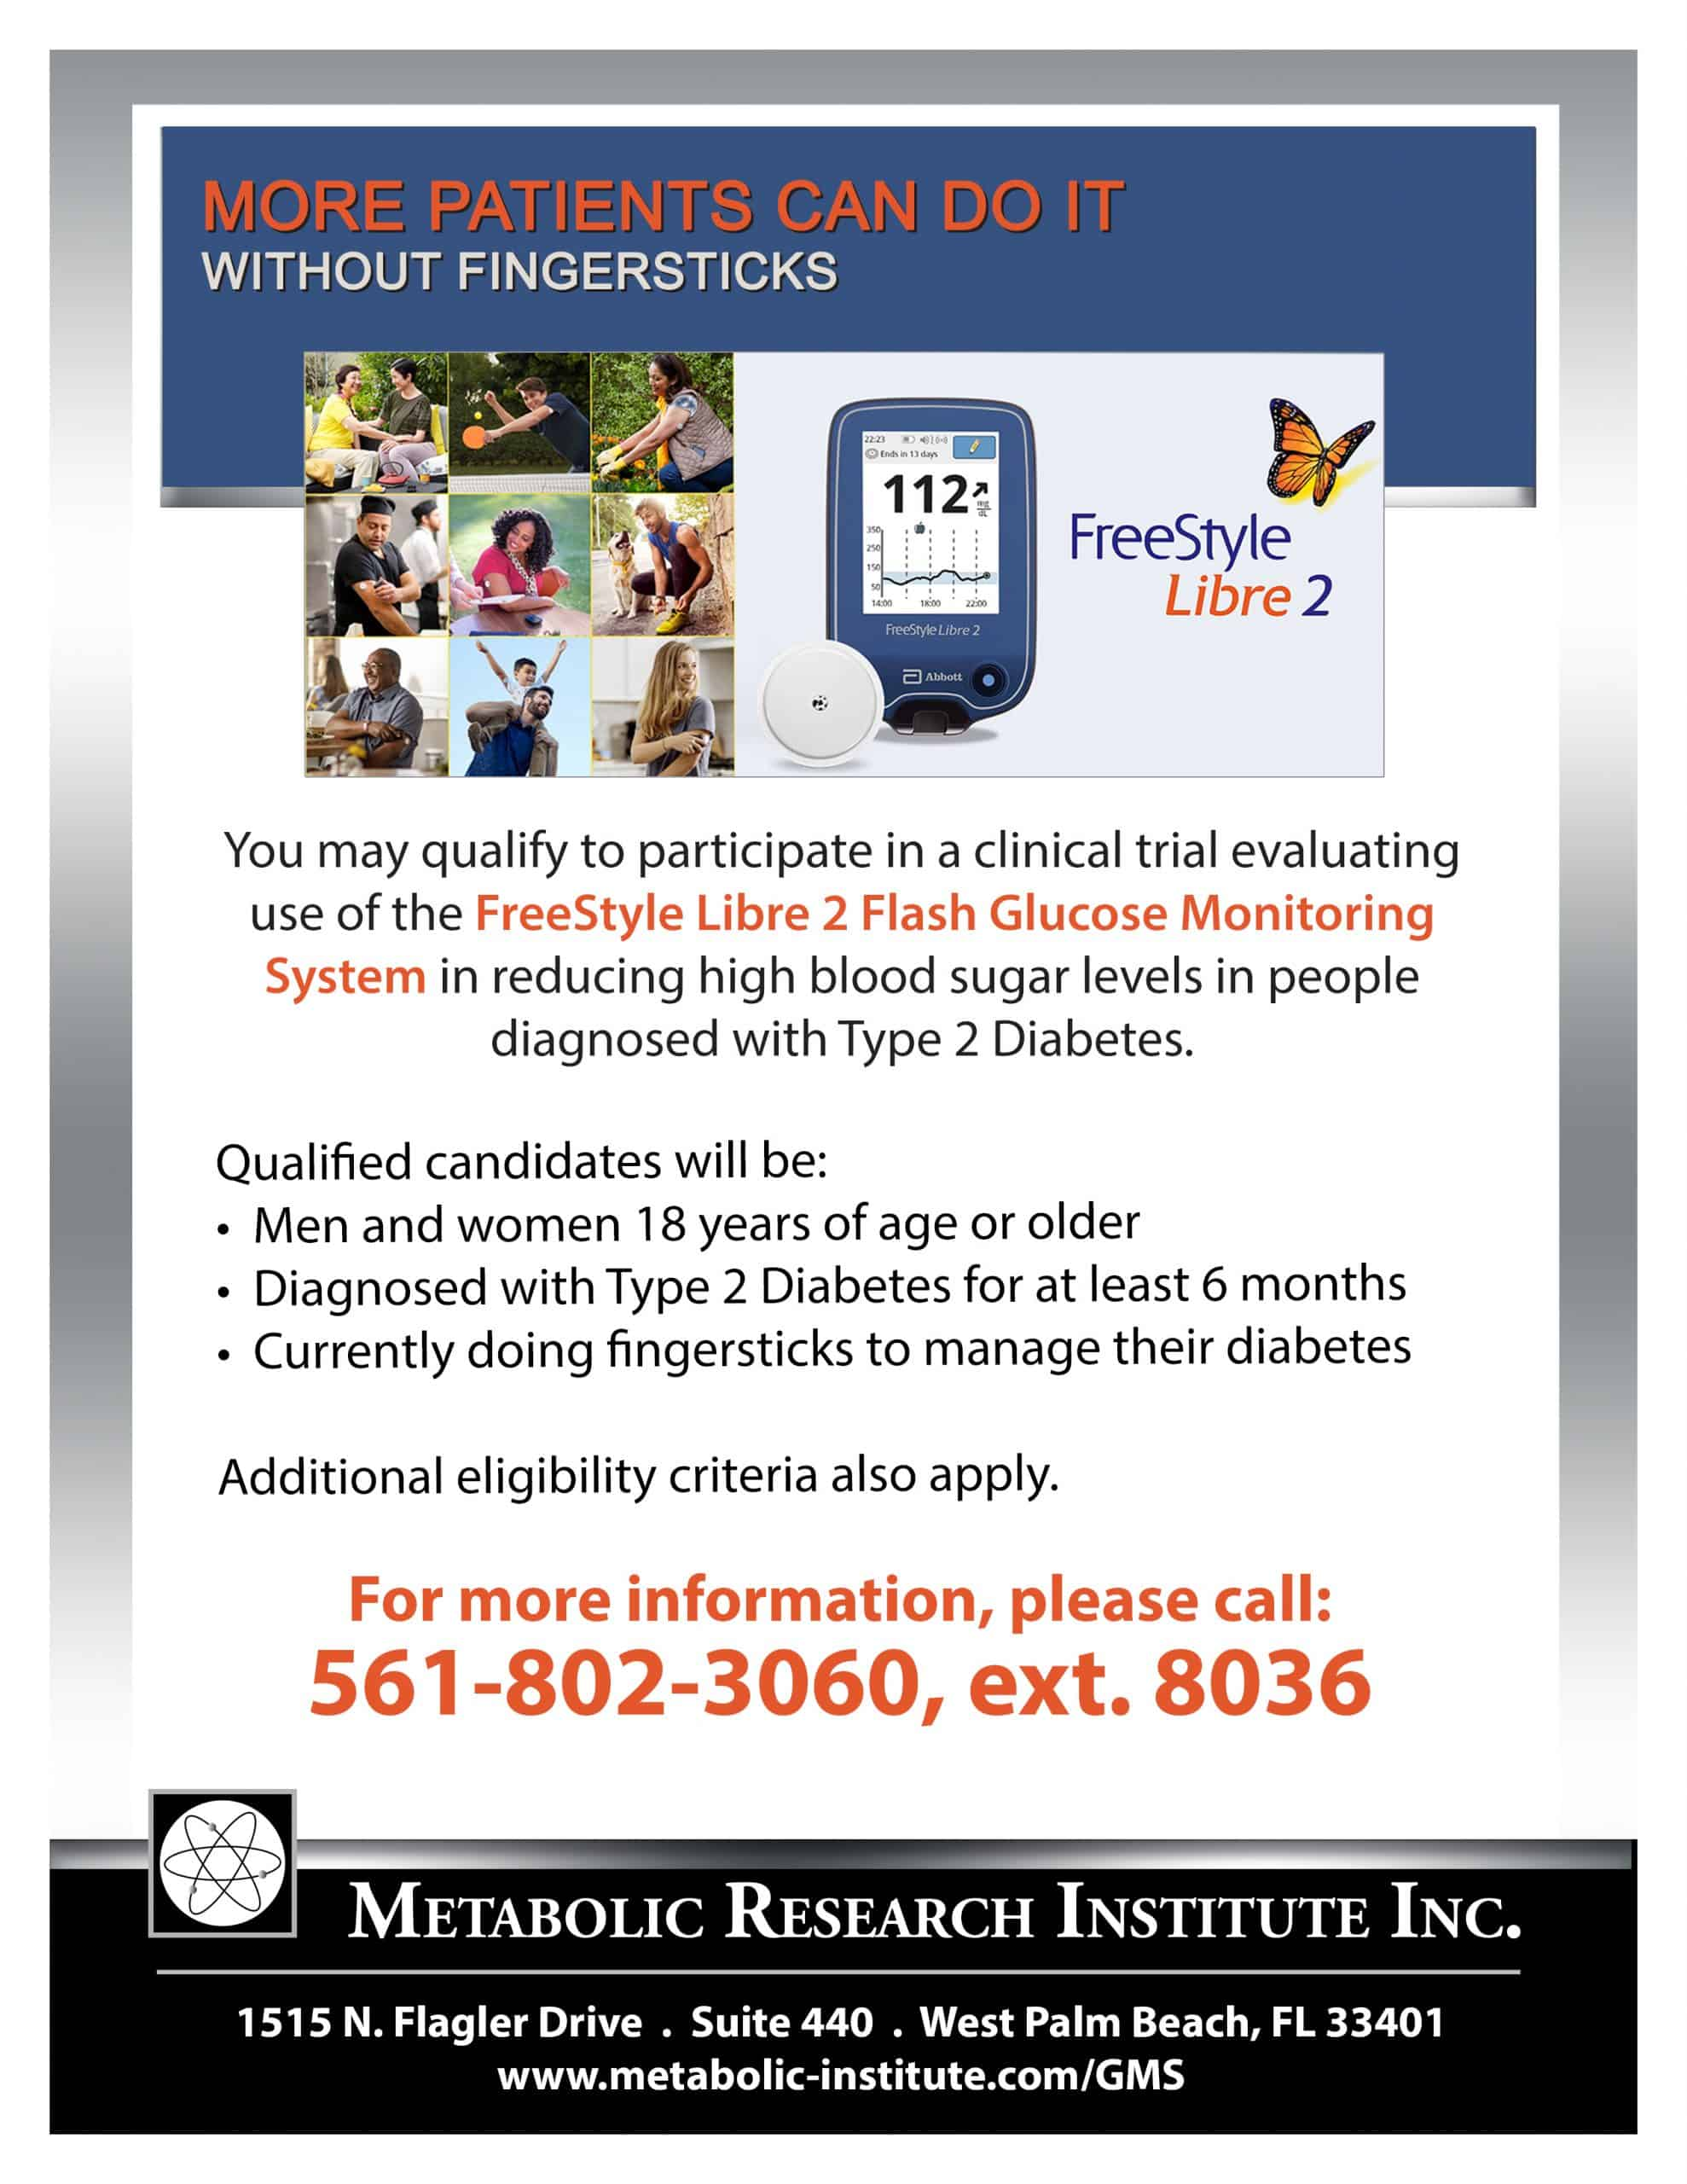 Freestyle Libre 2 Flash Glucose Monitoring System Clinical Study Flyer